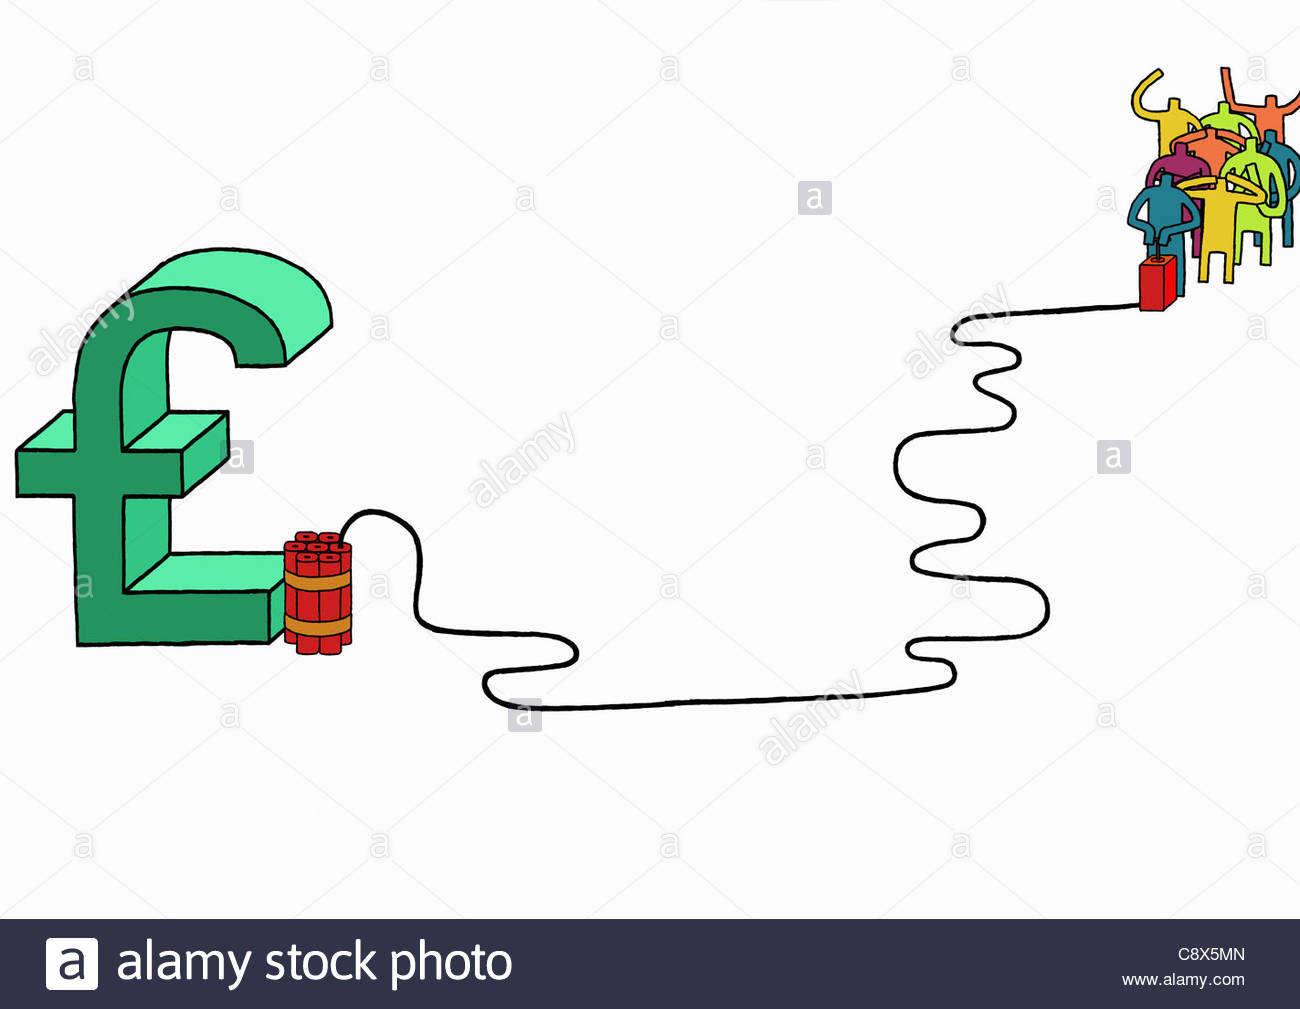 People Blowing Up British Pound Symbol With Dynamite Stock Photo